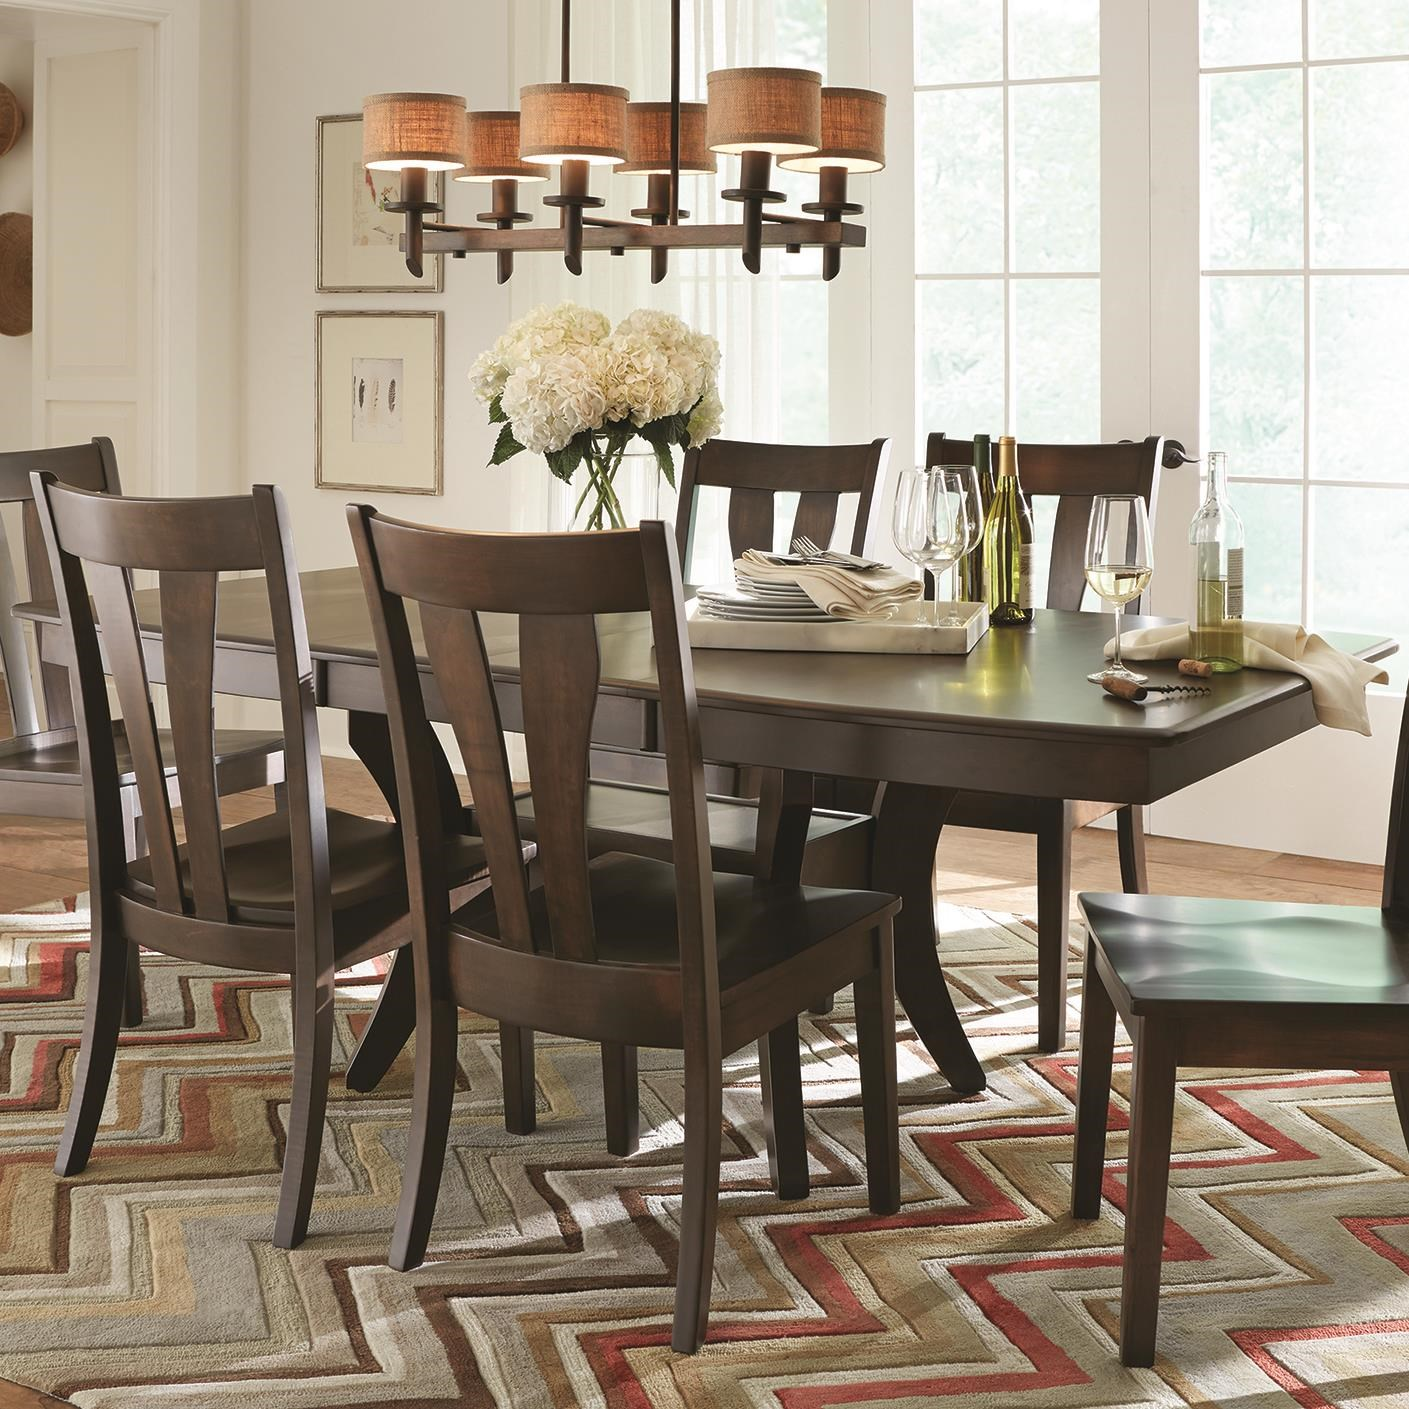 American Furniture Dining Tables Sets Warehouse Terrific Small Room